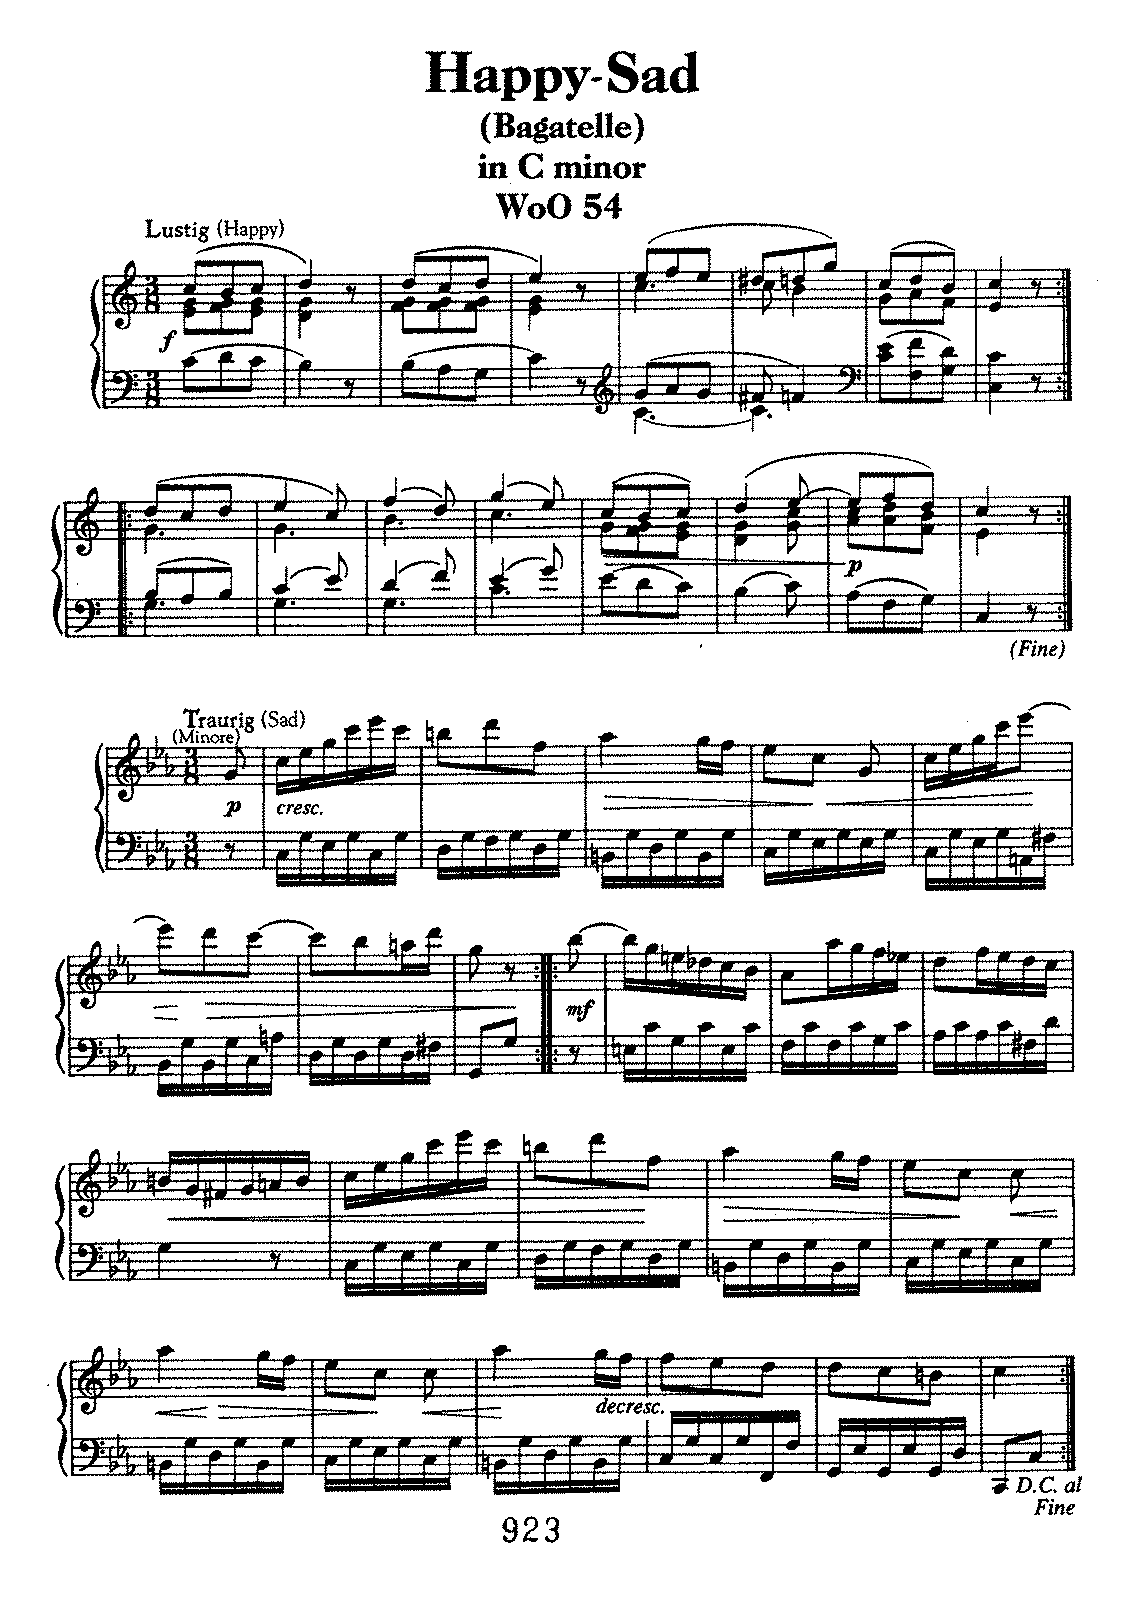 Beethoven - Bagatelle in C WoO 54.pdf